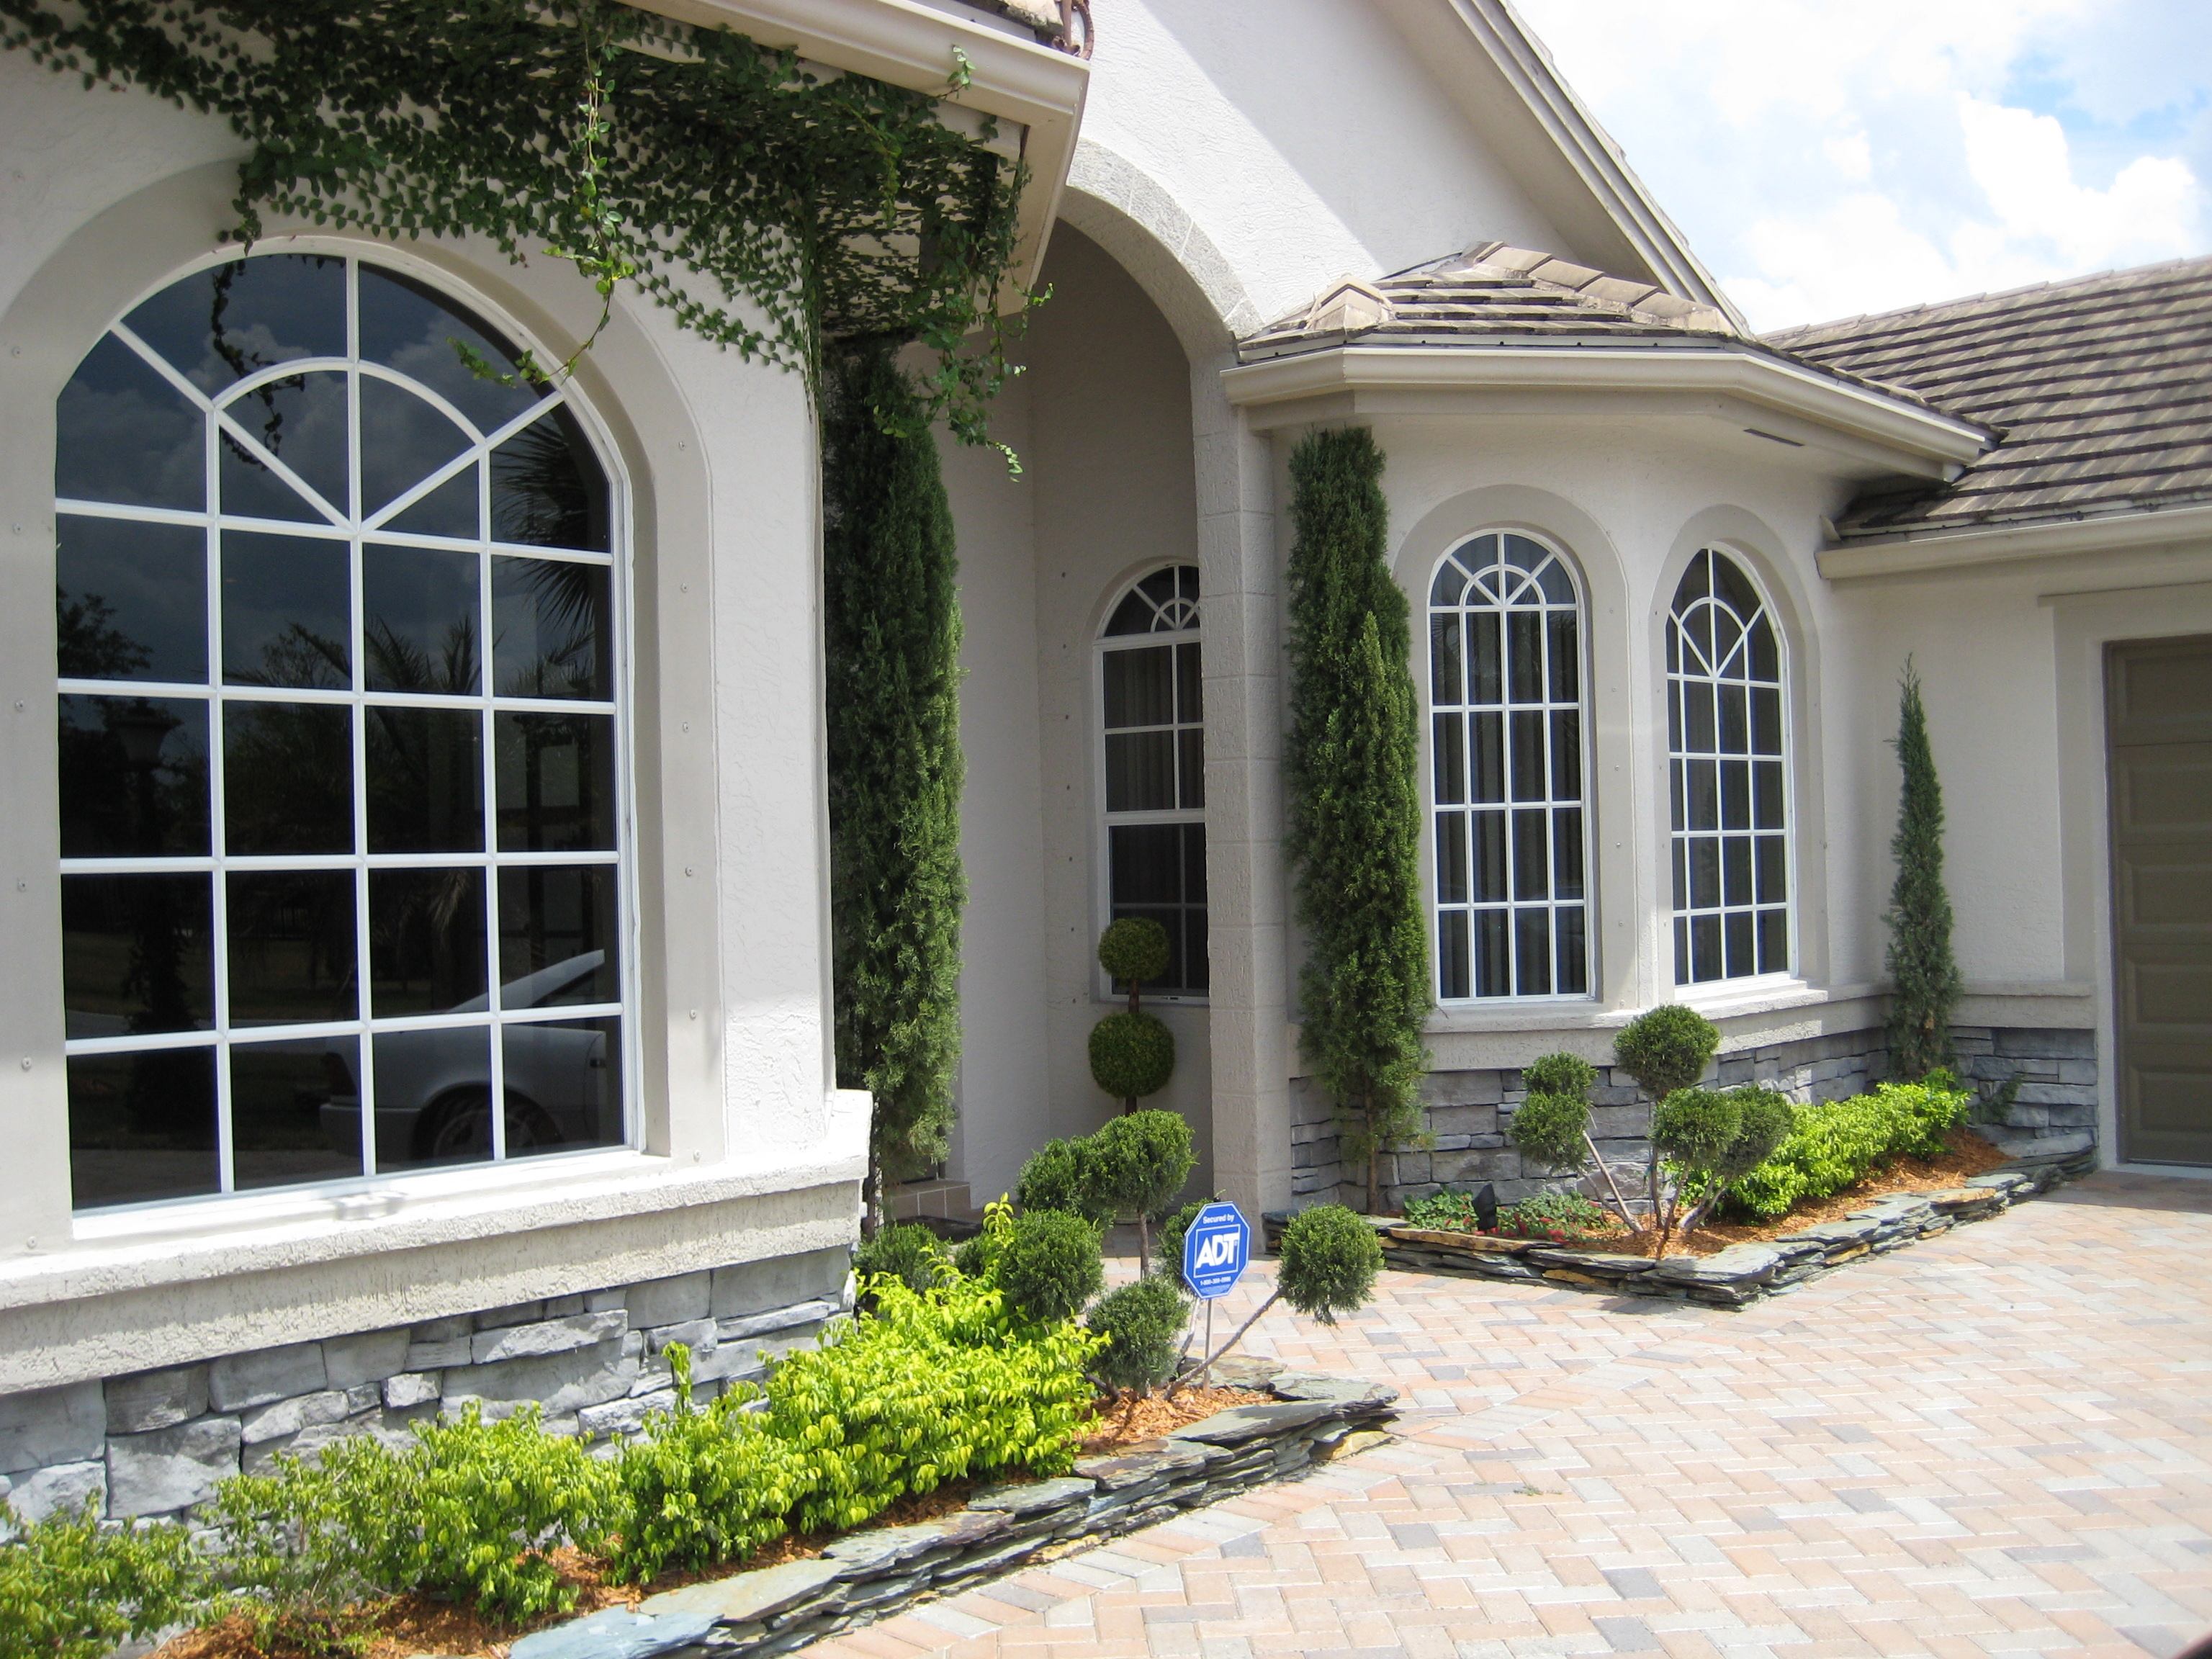 Exterior Windows For Homes : Fantastic window design ideas for your home